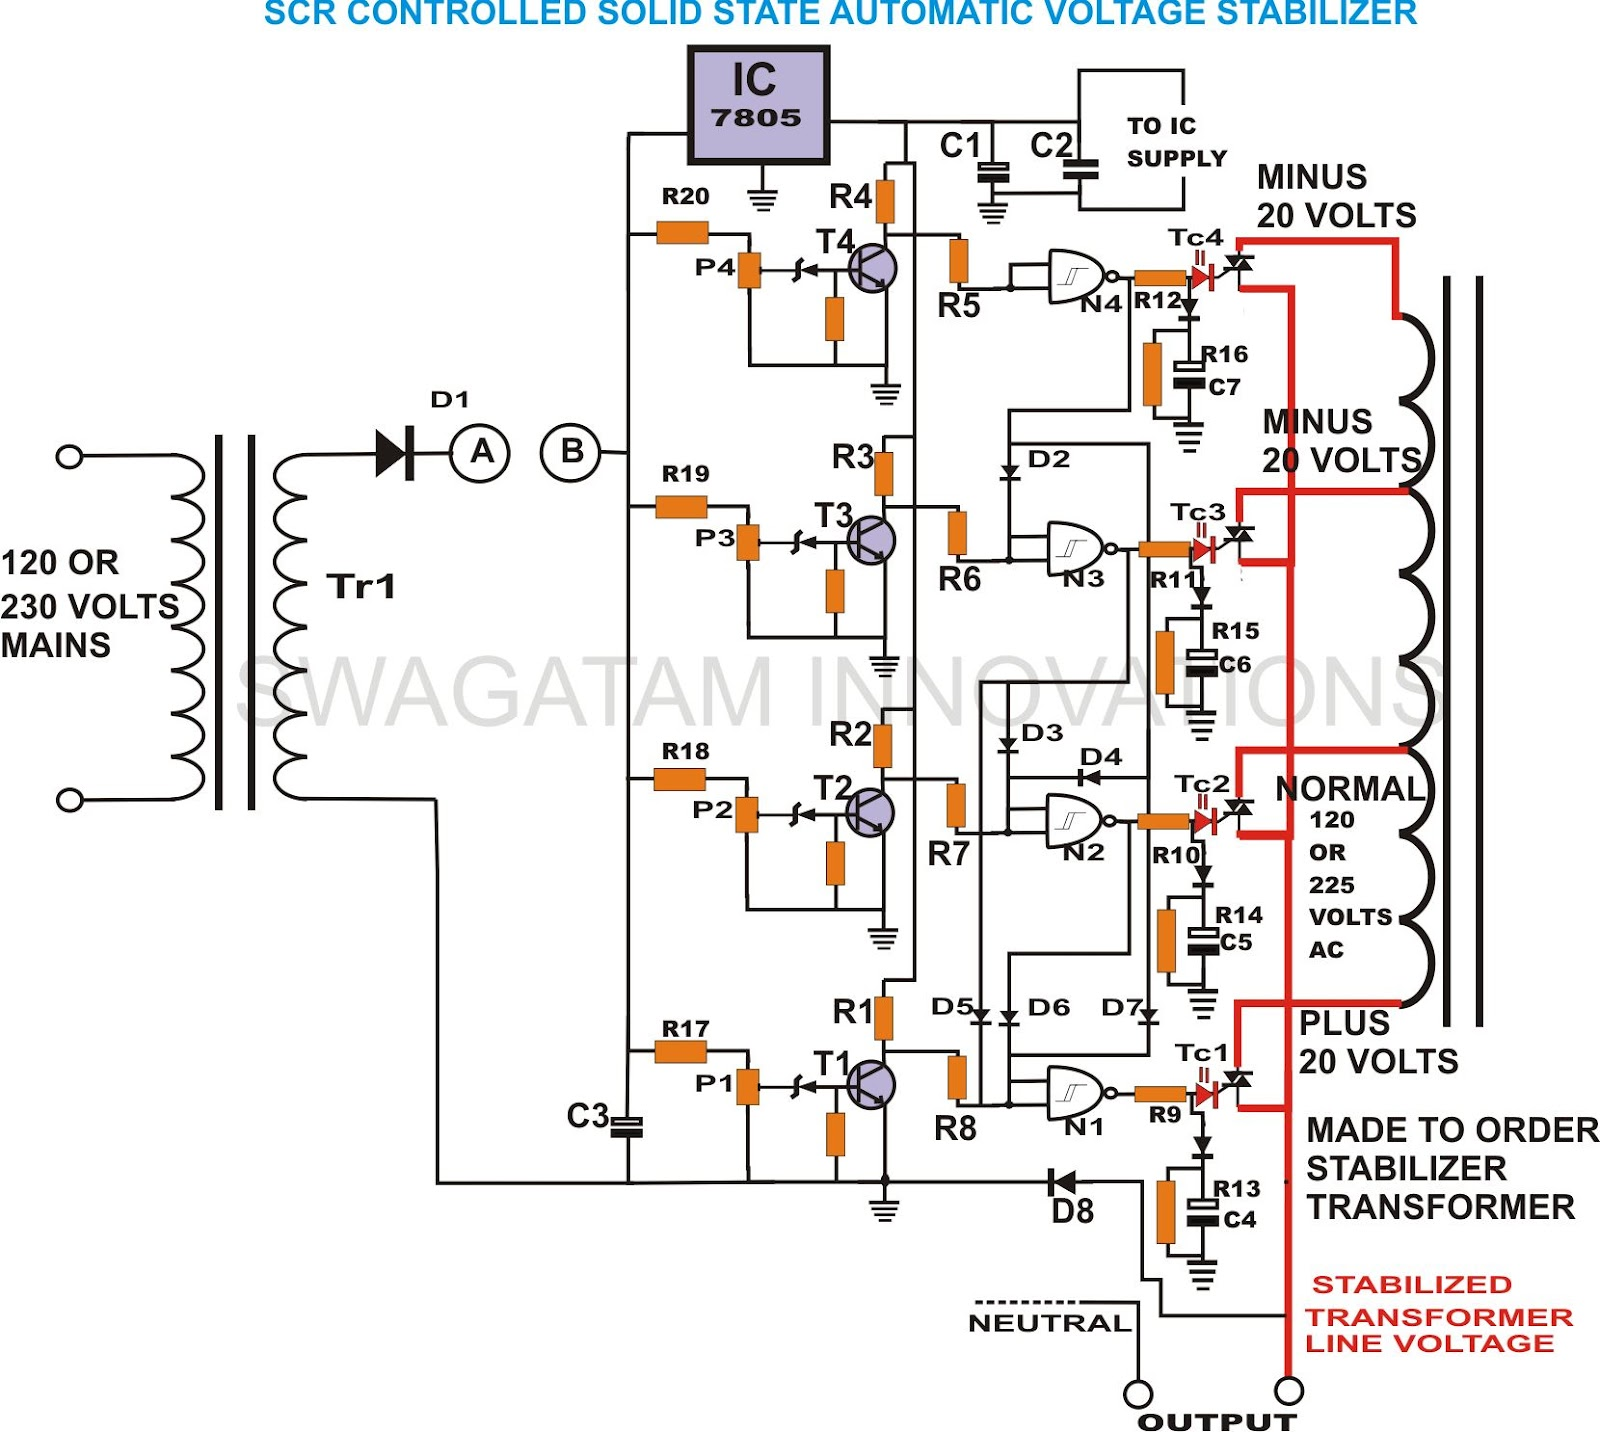 build solid state scrtriac controlled - schematic